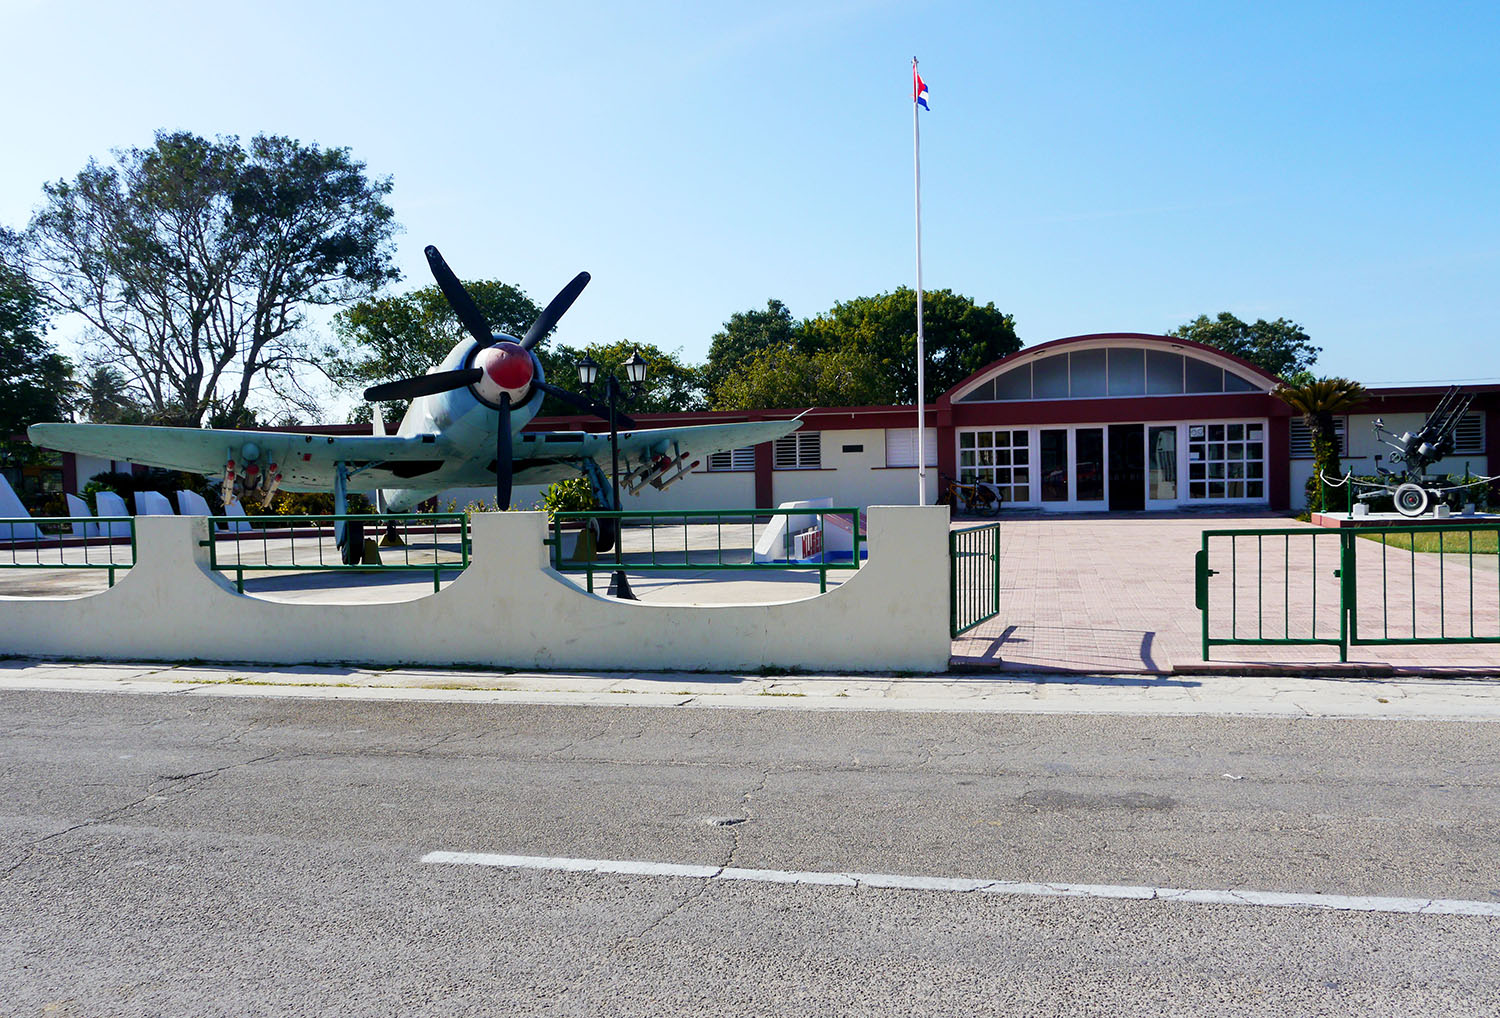 The entrance to the Bay of Pigs Museum in Cuba.